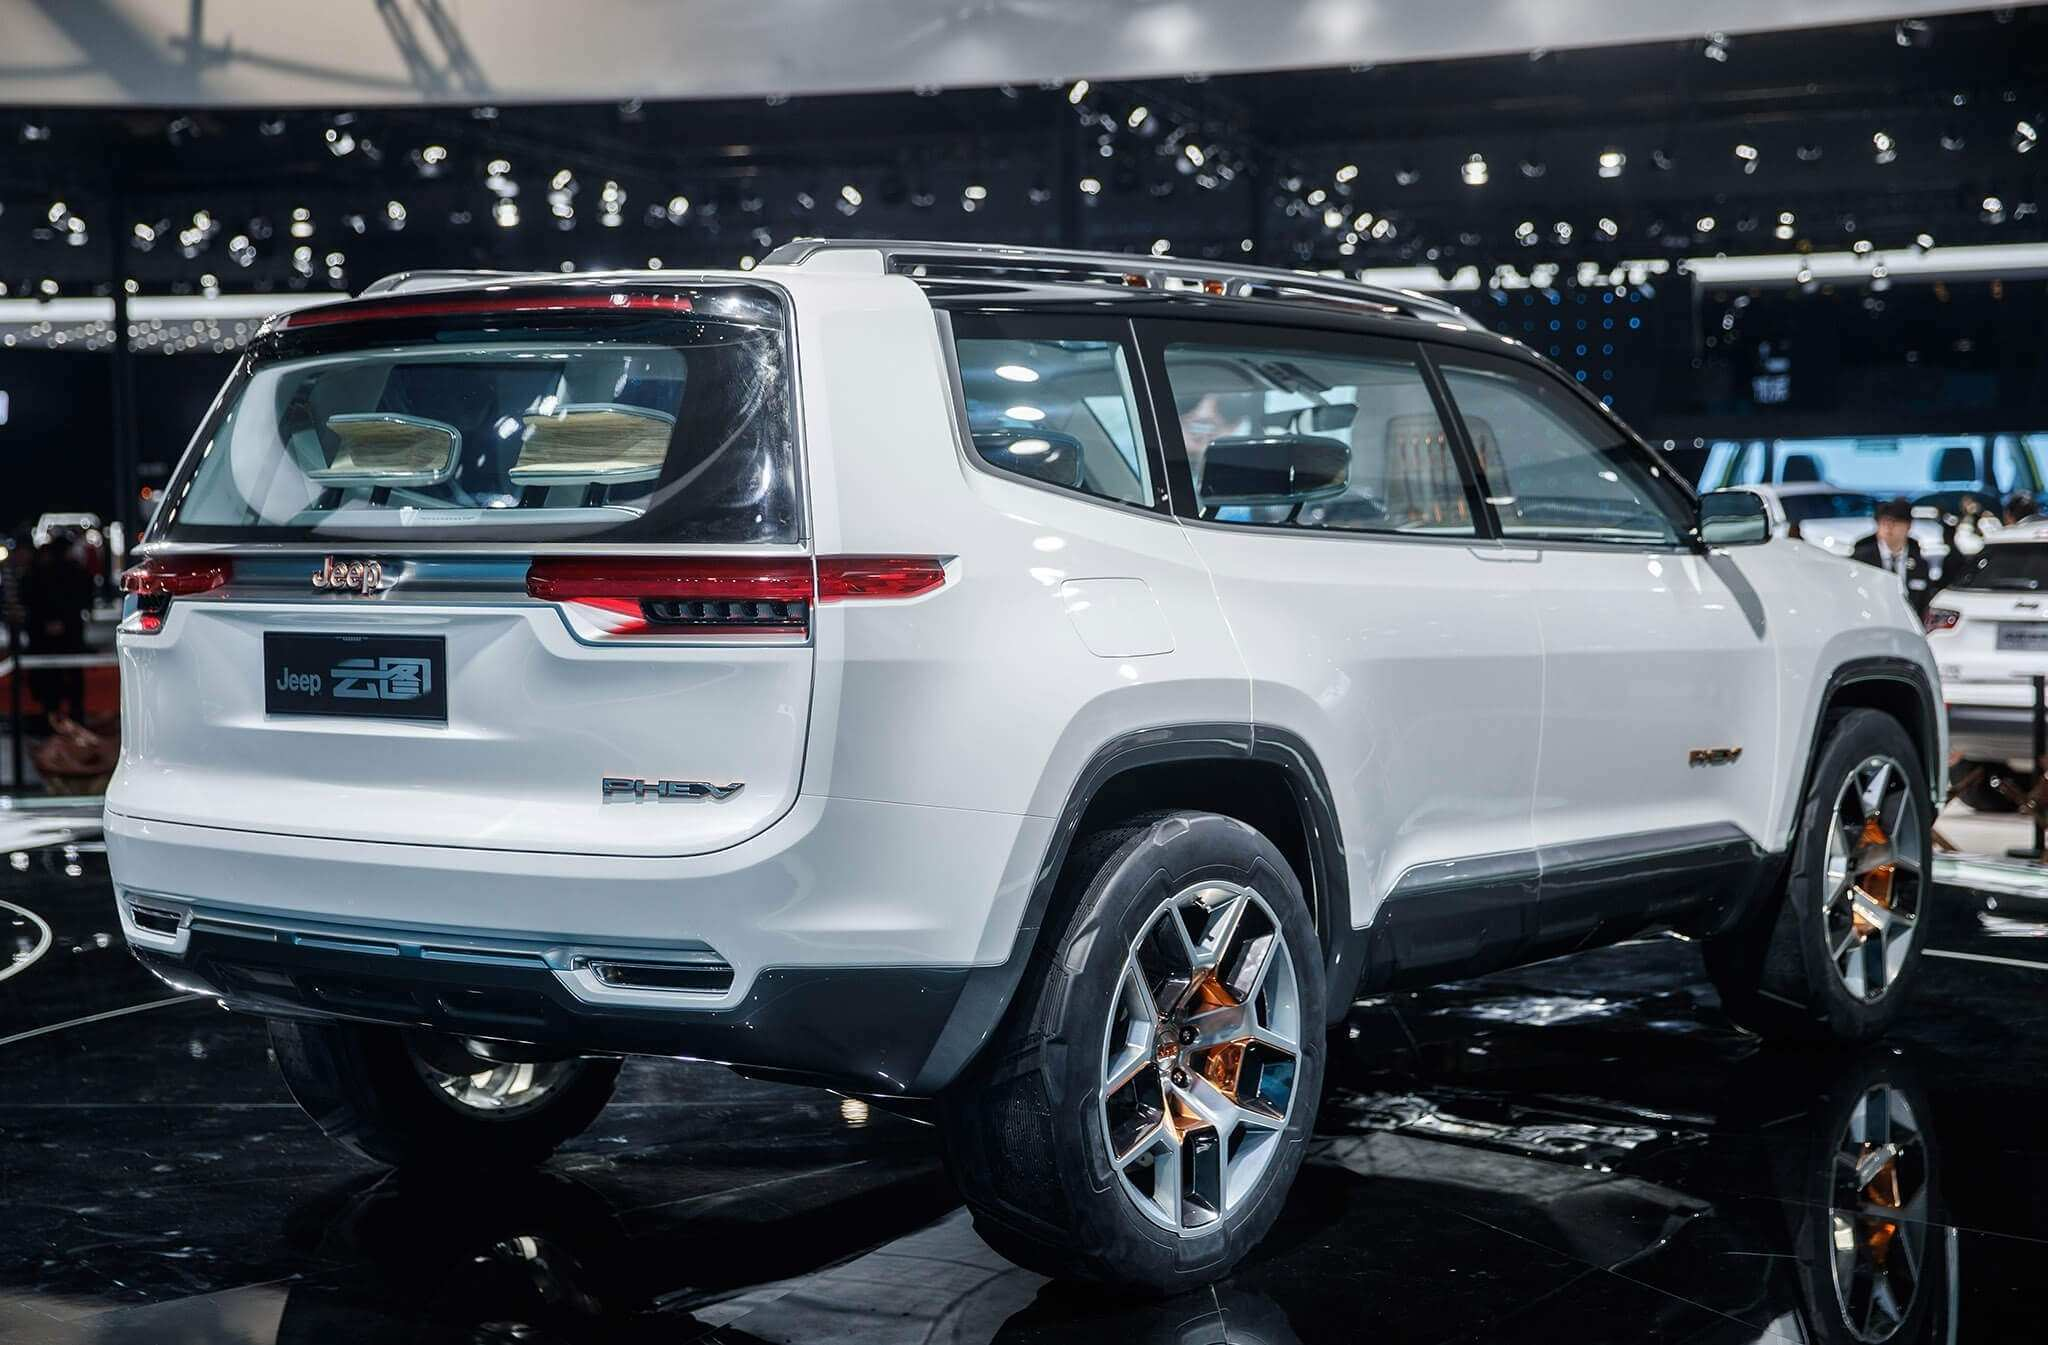 78 The 2020 Jeep Grand Cherokee Release Date Engine for 2020 Jeep Grand Cherokee Release Date